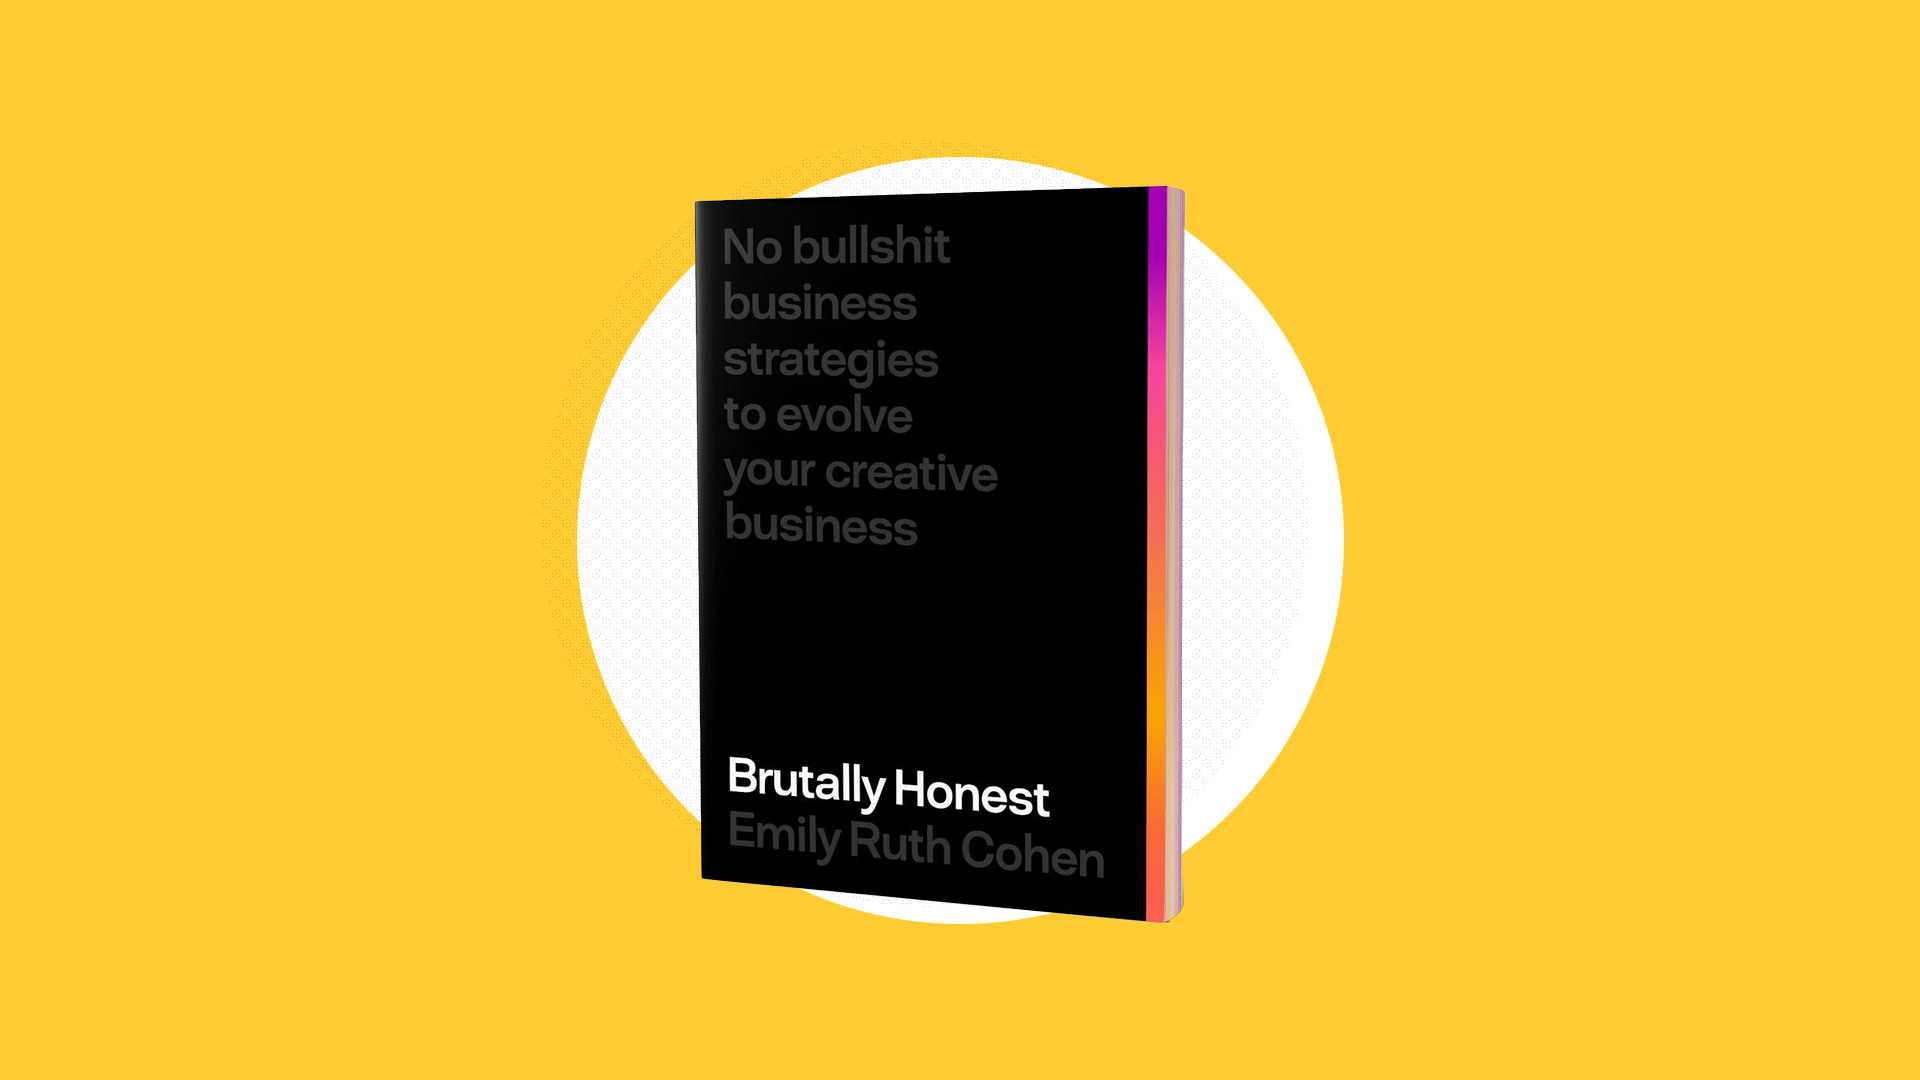 Brutally Honest - creative agency book review